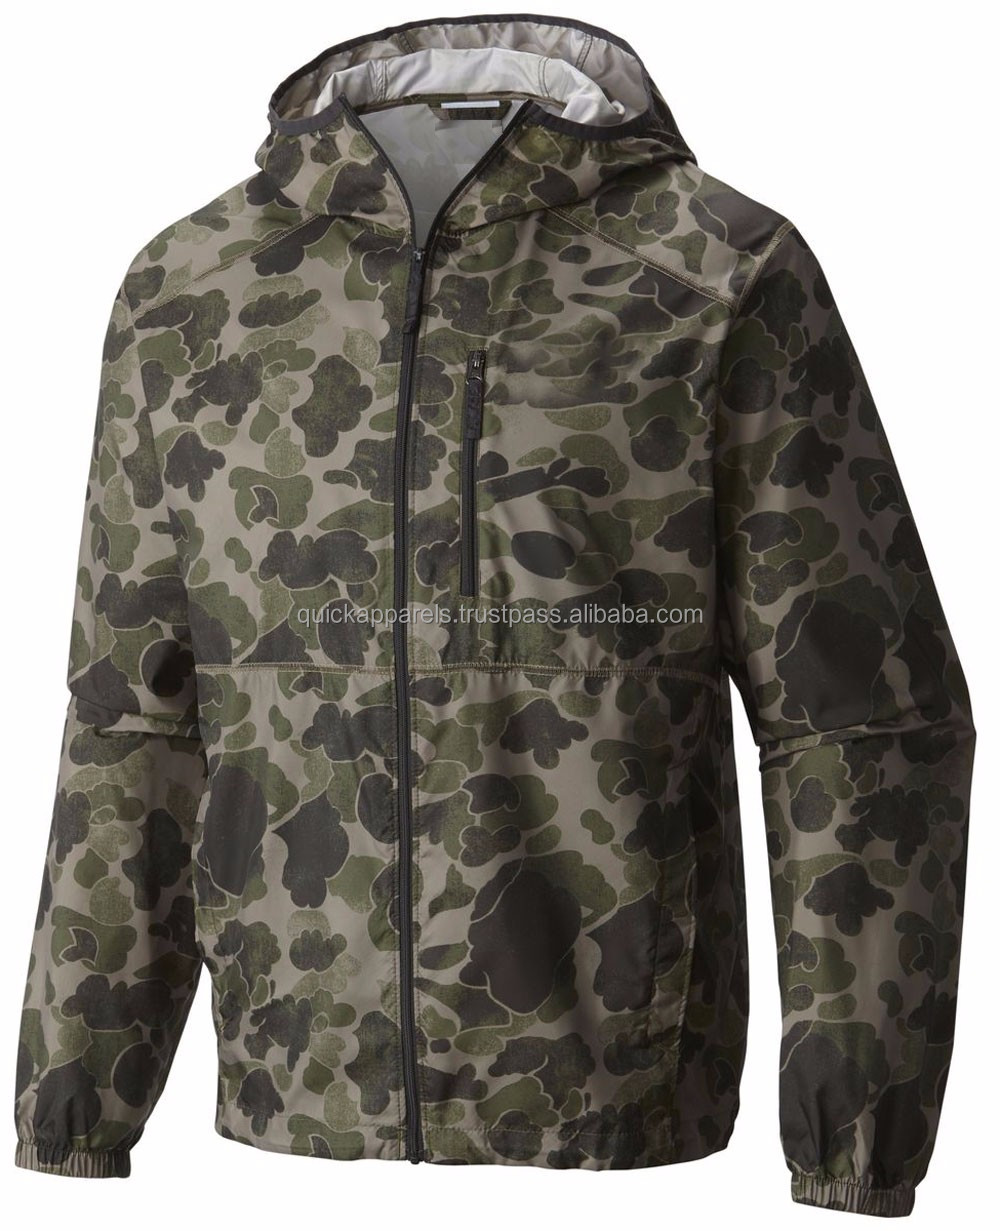 many pockets camo design mens custom lightweight windbreaker jackets wholesale